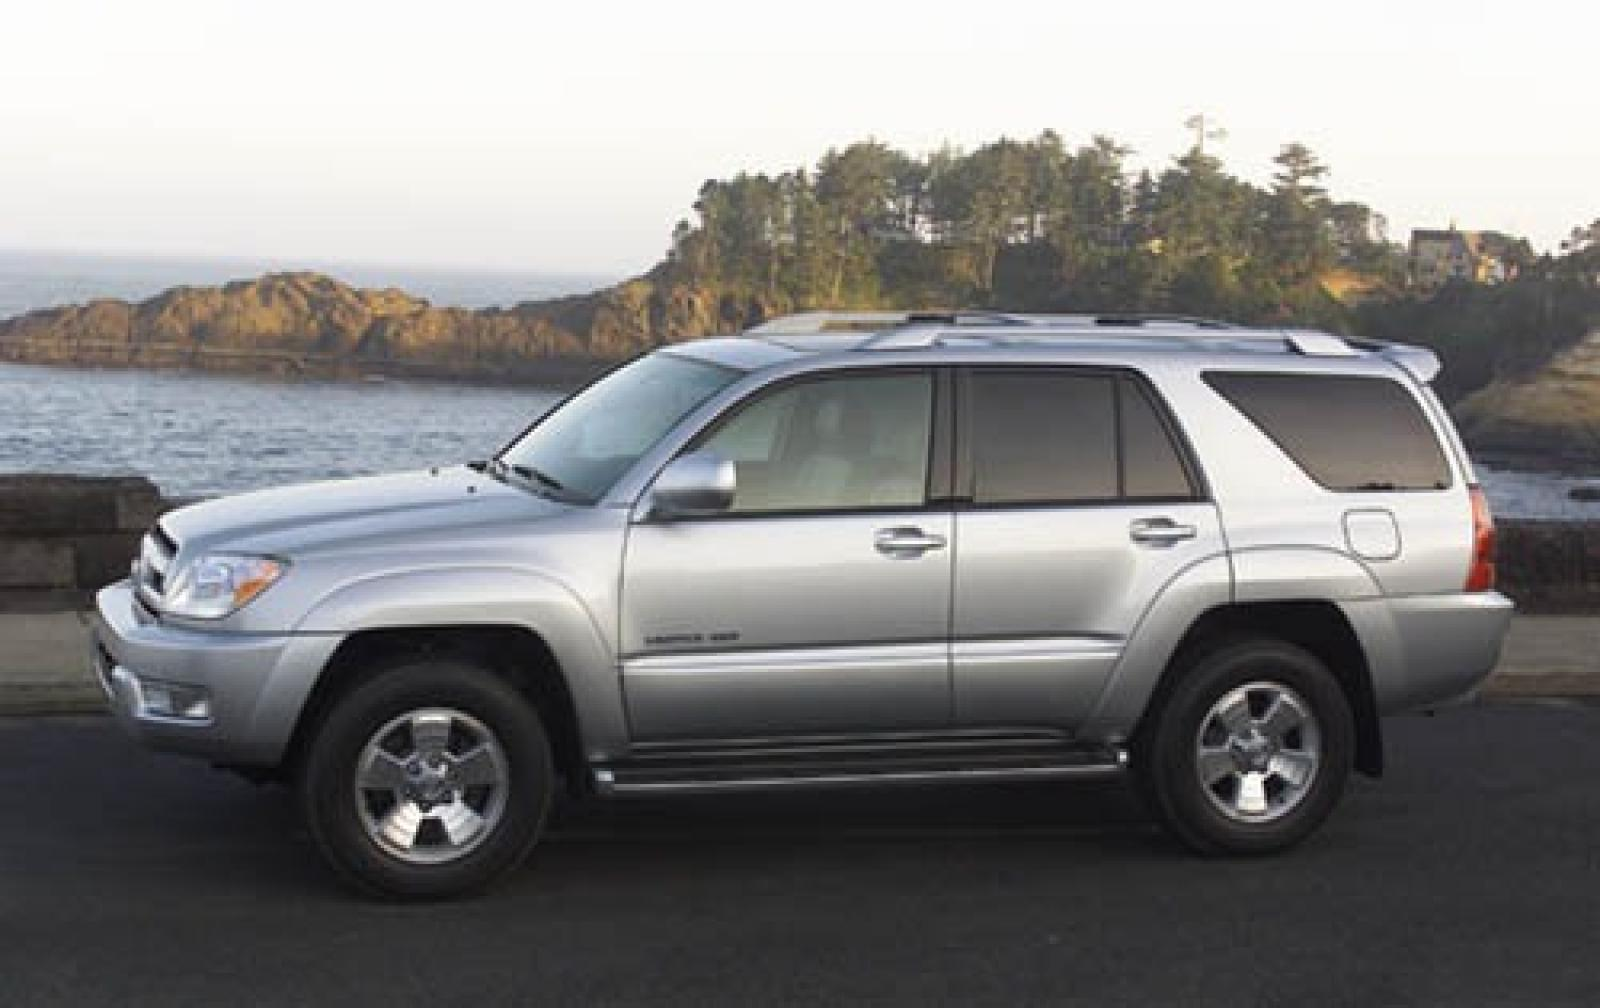 2005 toyota 4runner information and photos zombiedrive. Black Bedroom Furniture Sets. Home Design Ideas